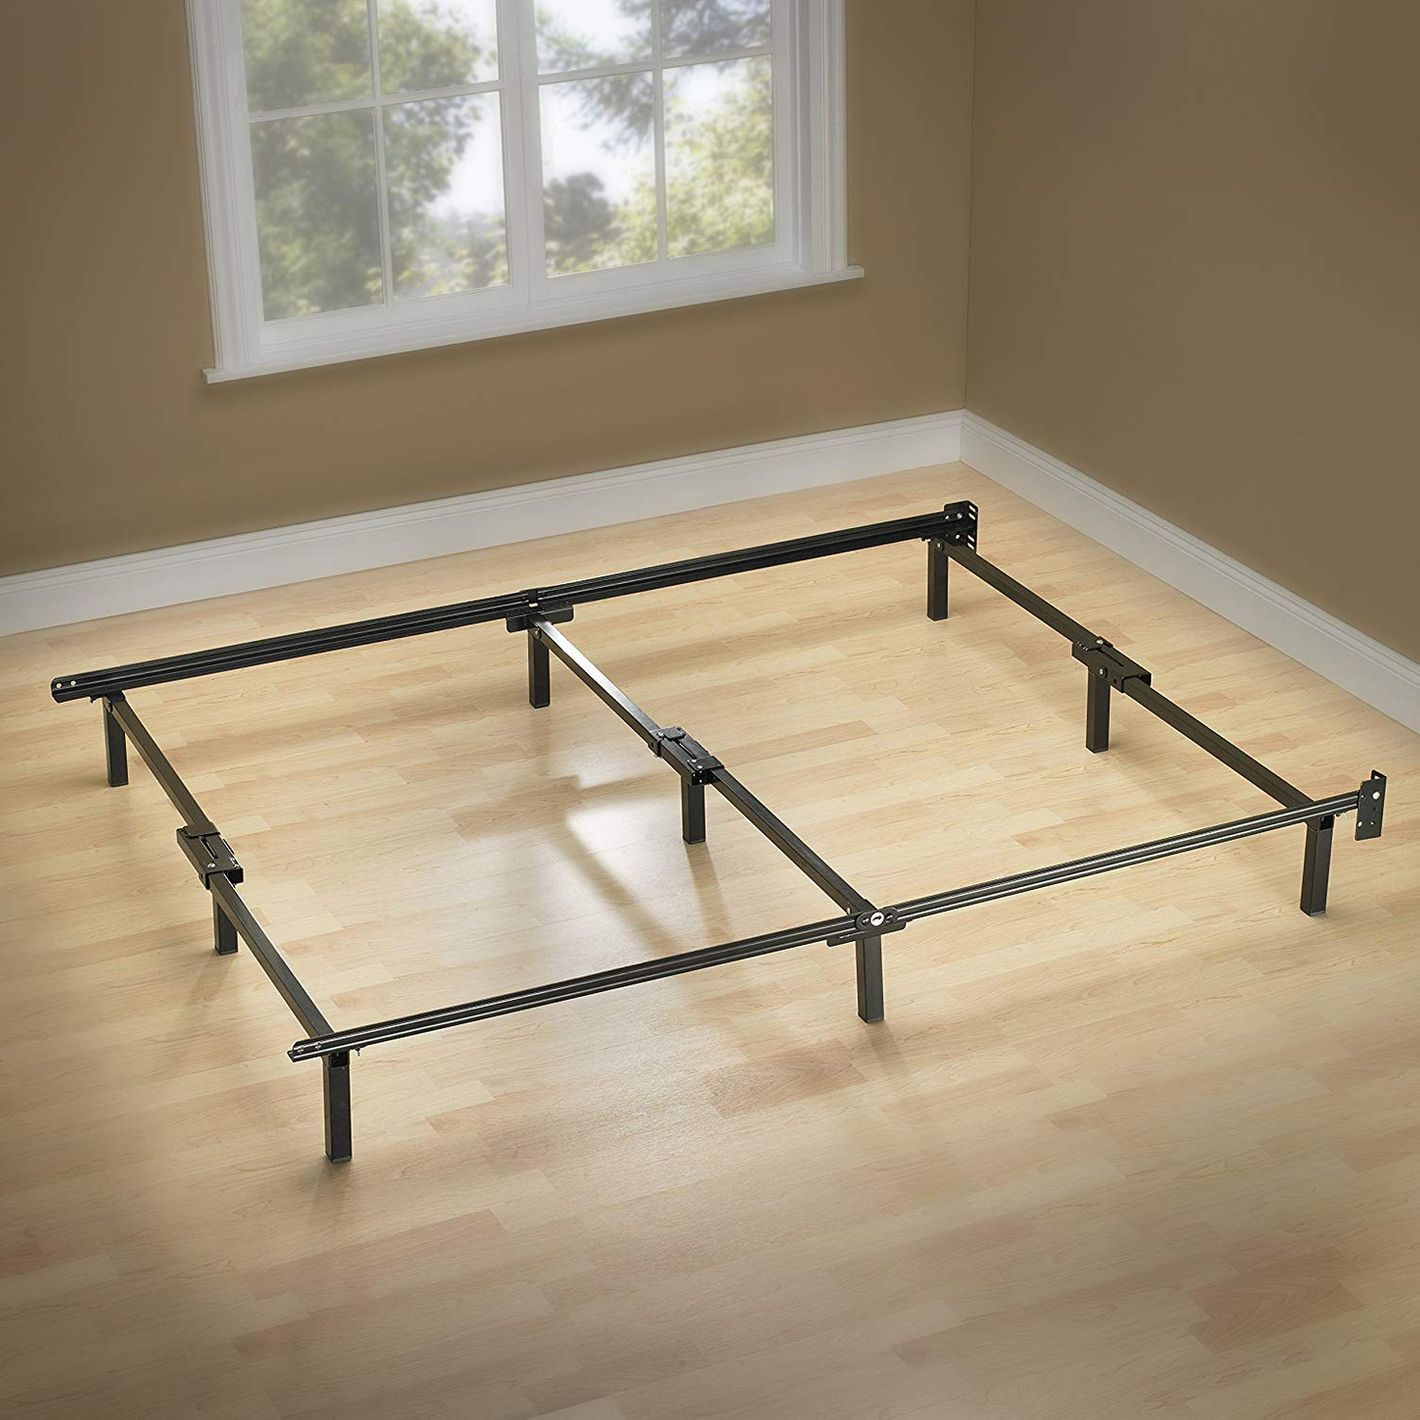 Zinus Compack 9-Leg Support Bed Frame for Box Spring & Mattress Set — Queen